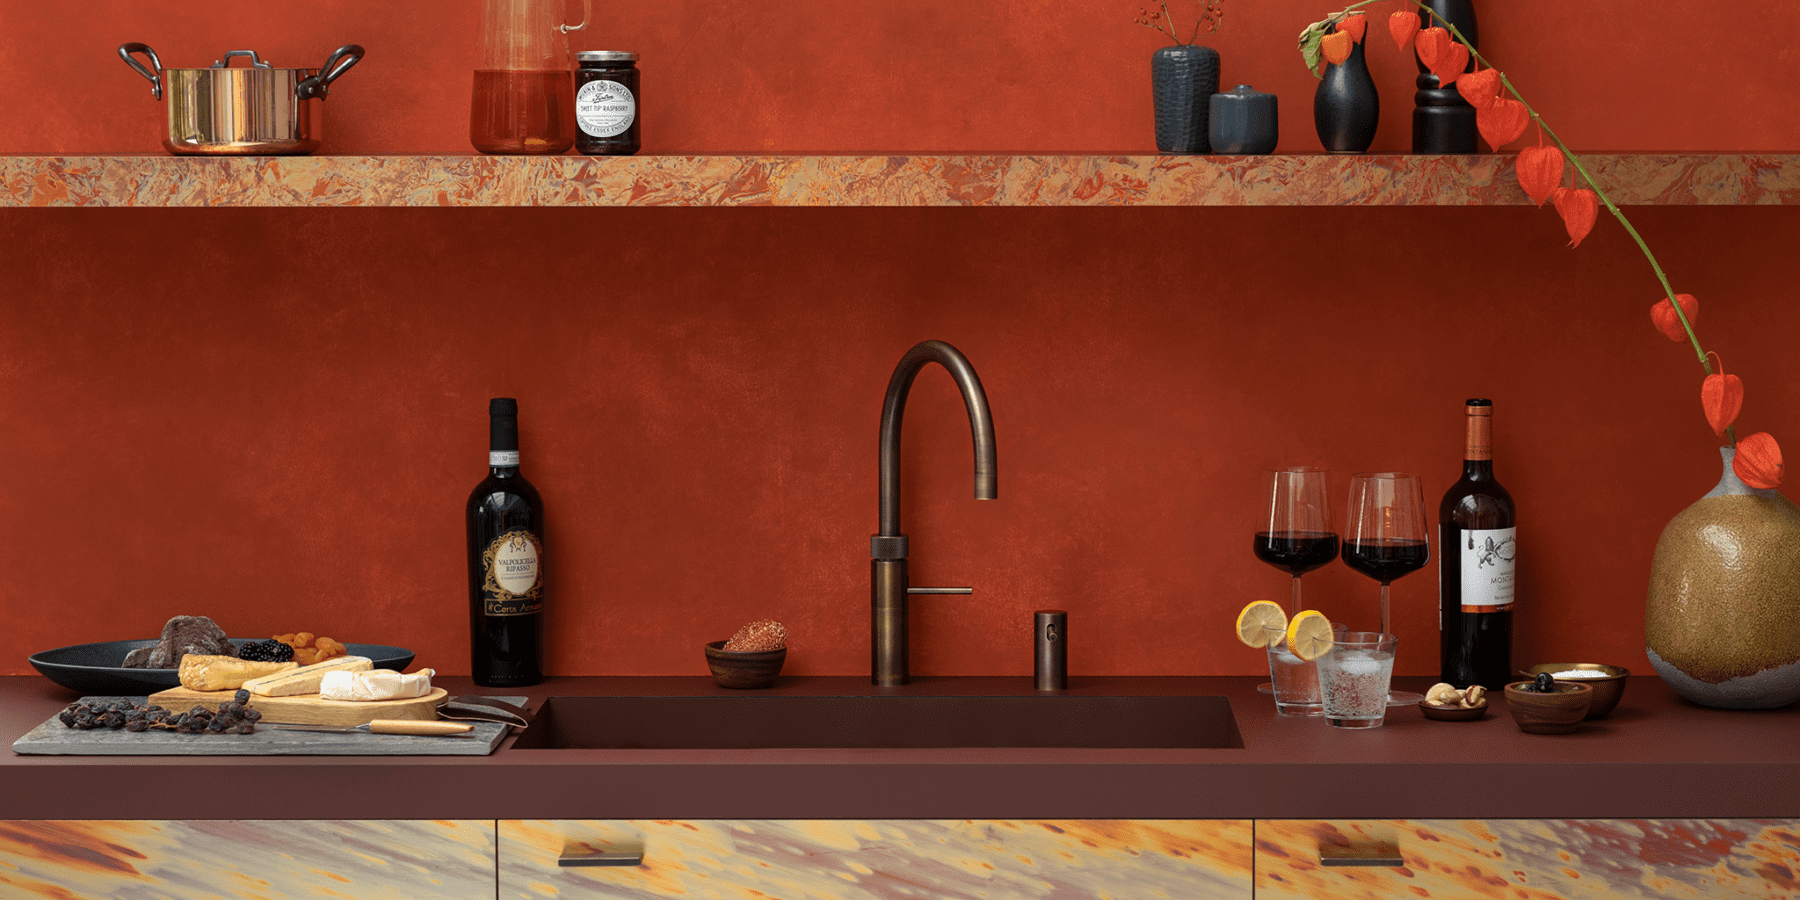 Boiling water tap - Quooker- Fusion Round Patinated Brass | MHK Kitchen Experts